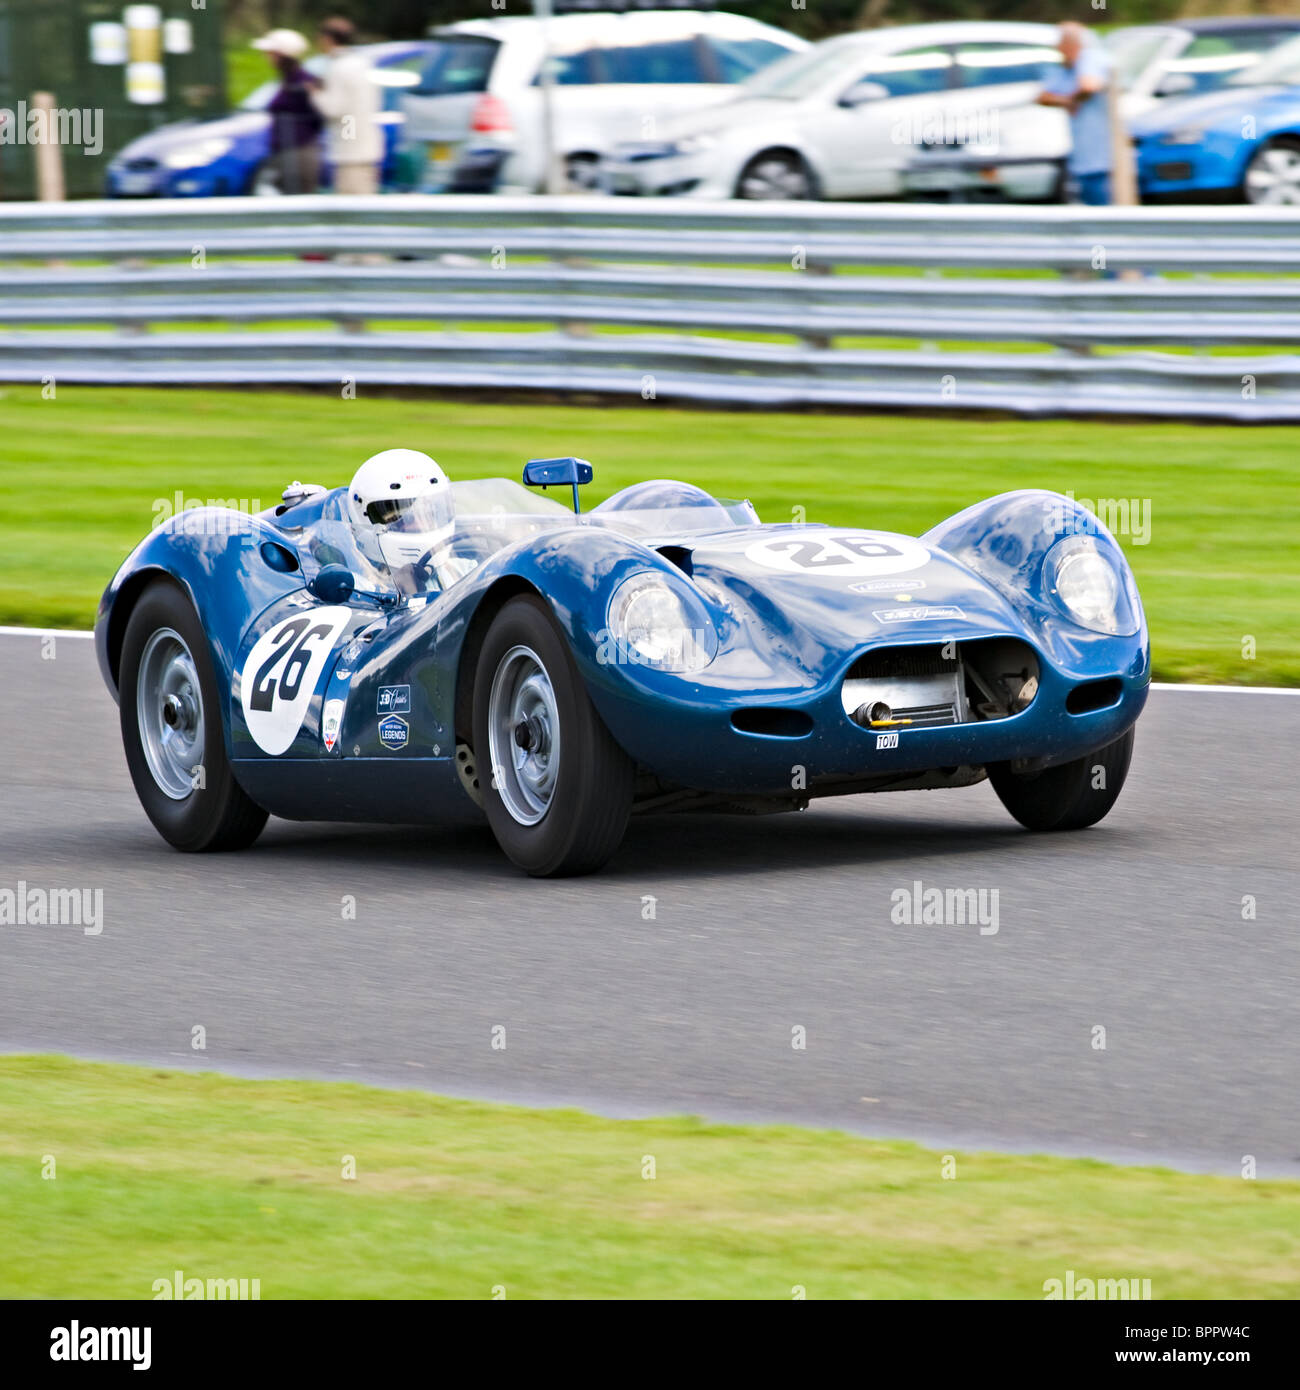 Lister Jaguar Sports Racing Car in Trophy Race at Oulton Park Motor Race Circuit Cheshire England United Kingdom - Stock Image